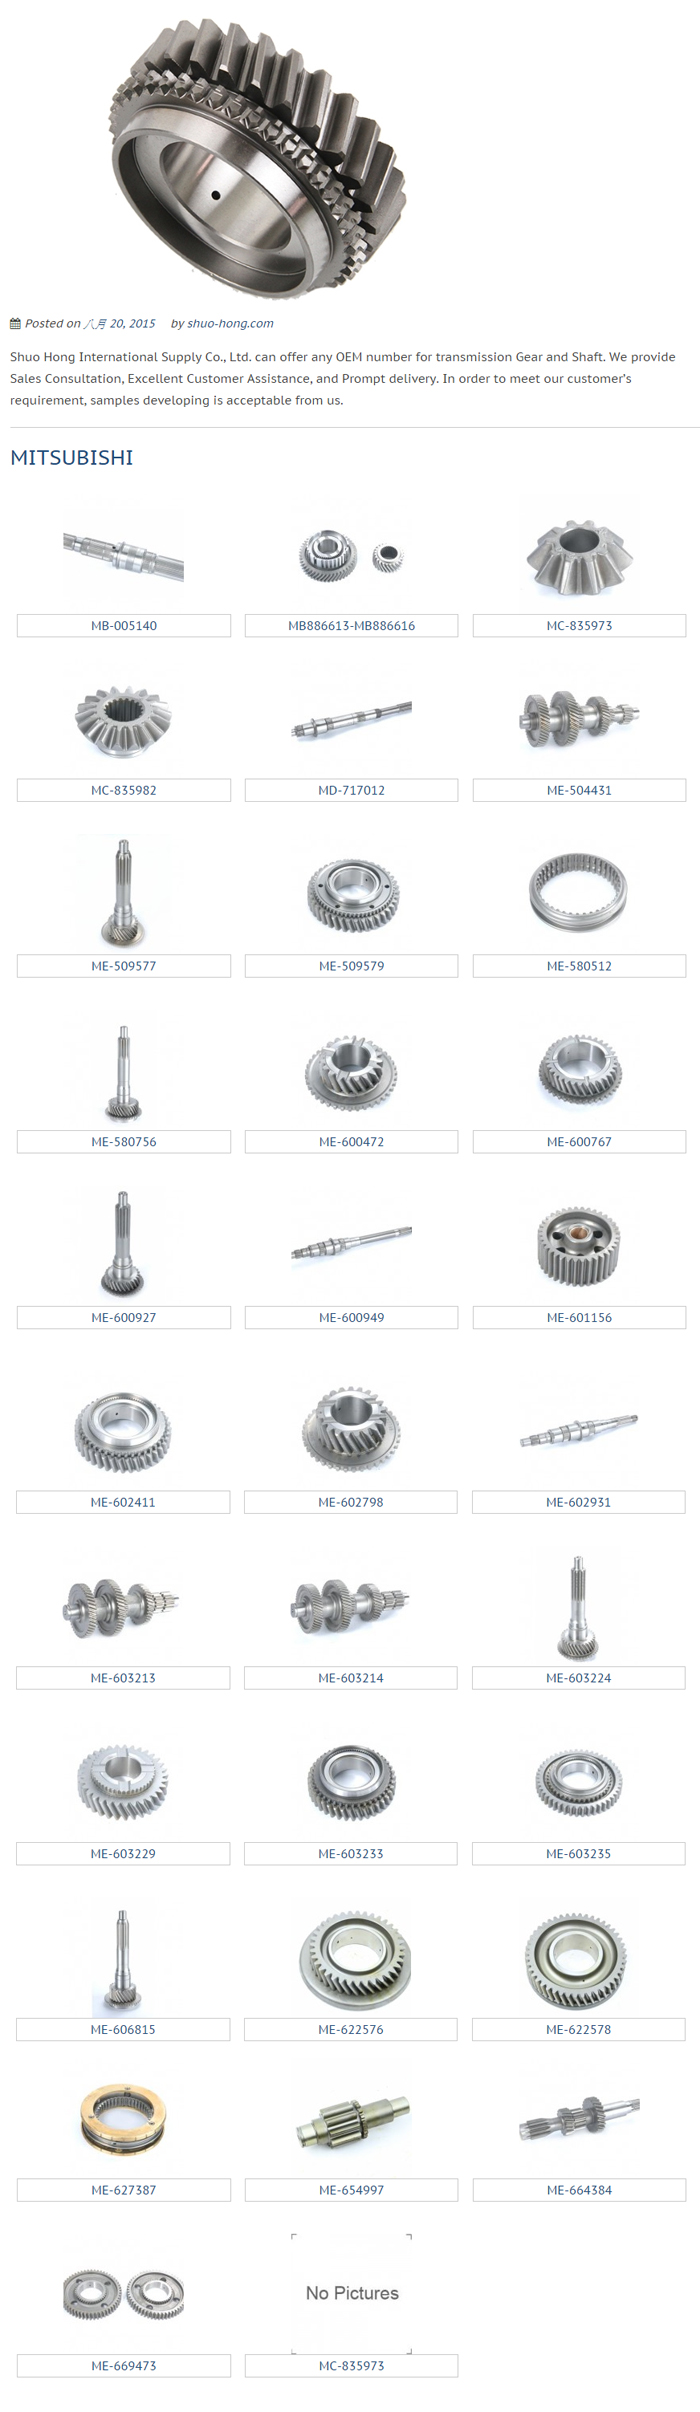 Aftermarket Transmission Gear & Shaft